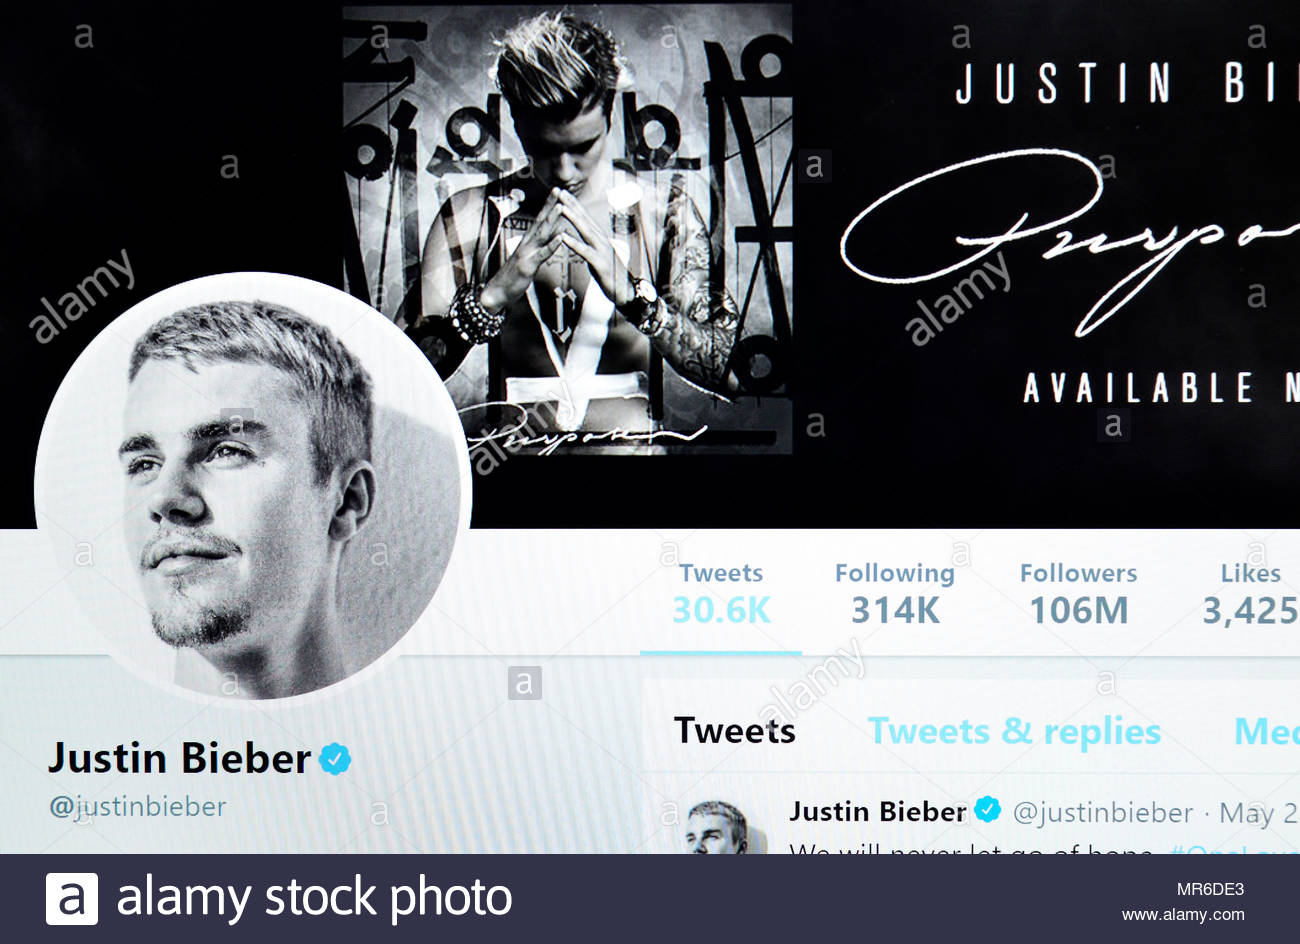 Justin Bieber Twitter page (2018) - Stock Image